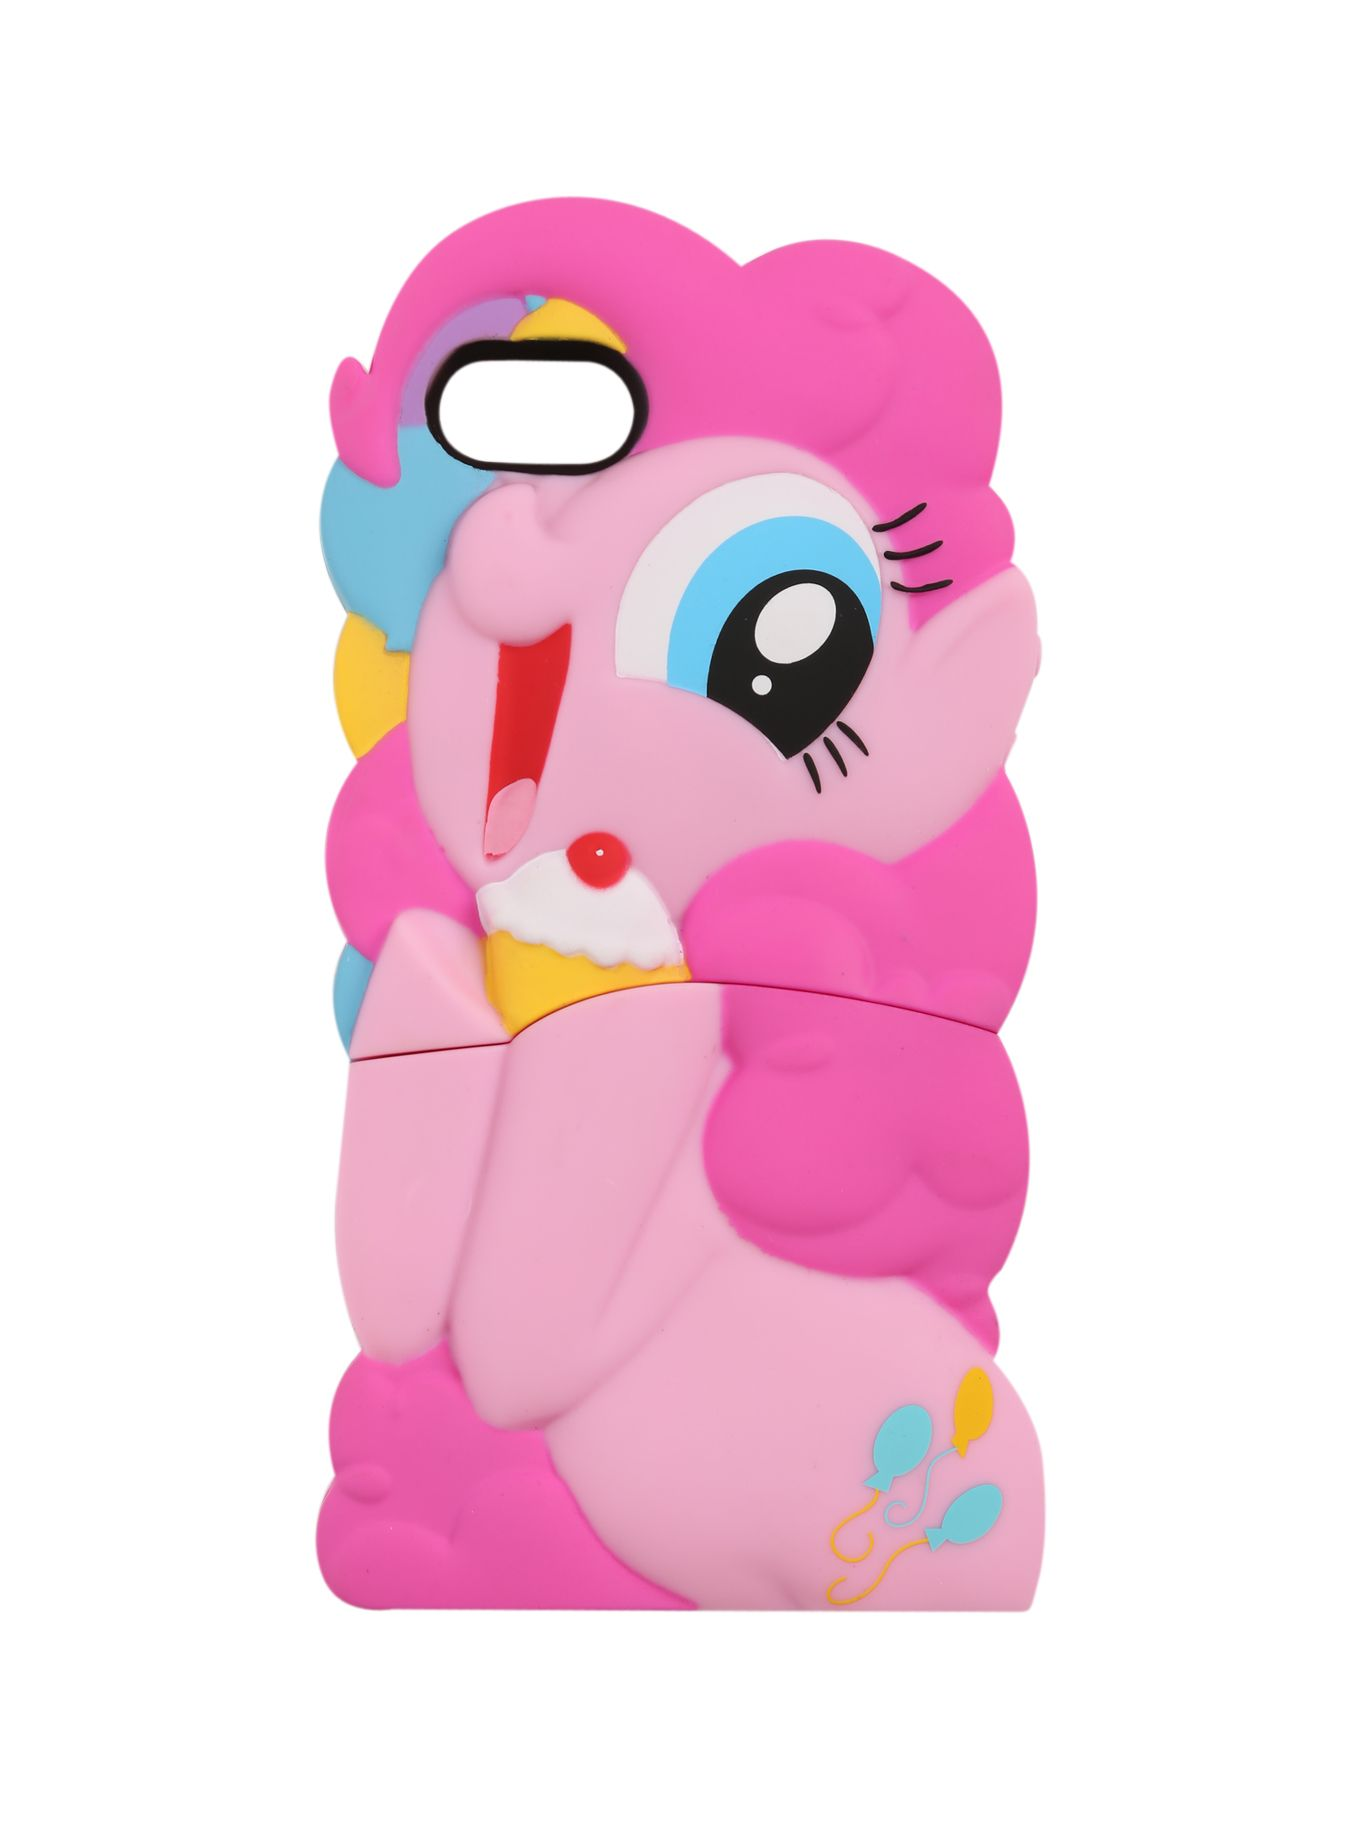 5d1e9017c11 My Little Pony Chara-Covers Pinkie Pie iPhone 4/4S Case | Apps and ...